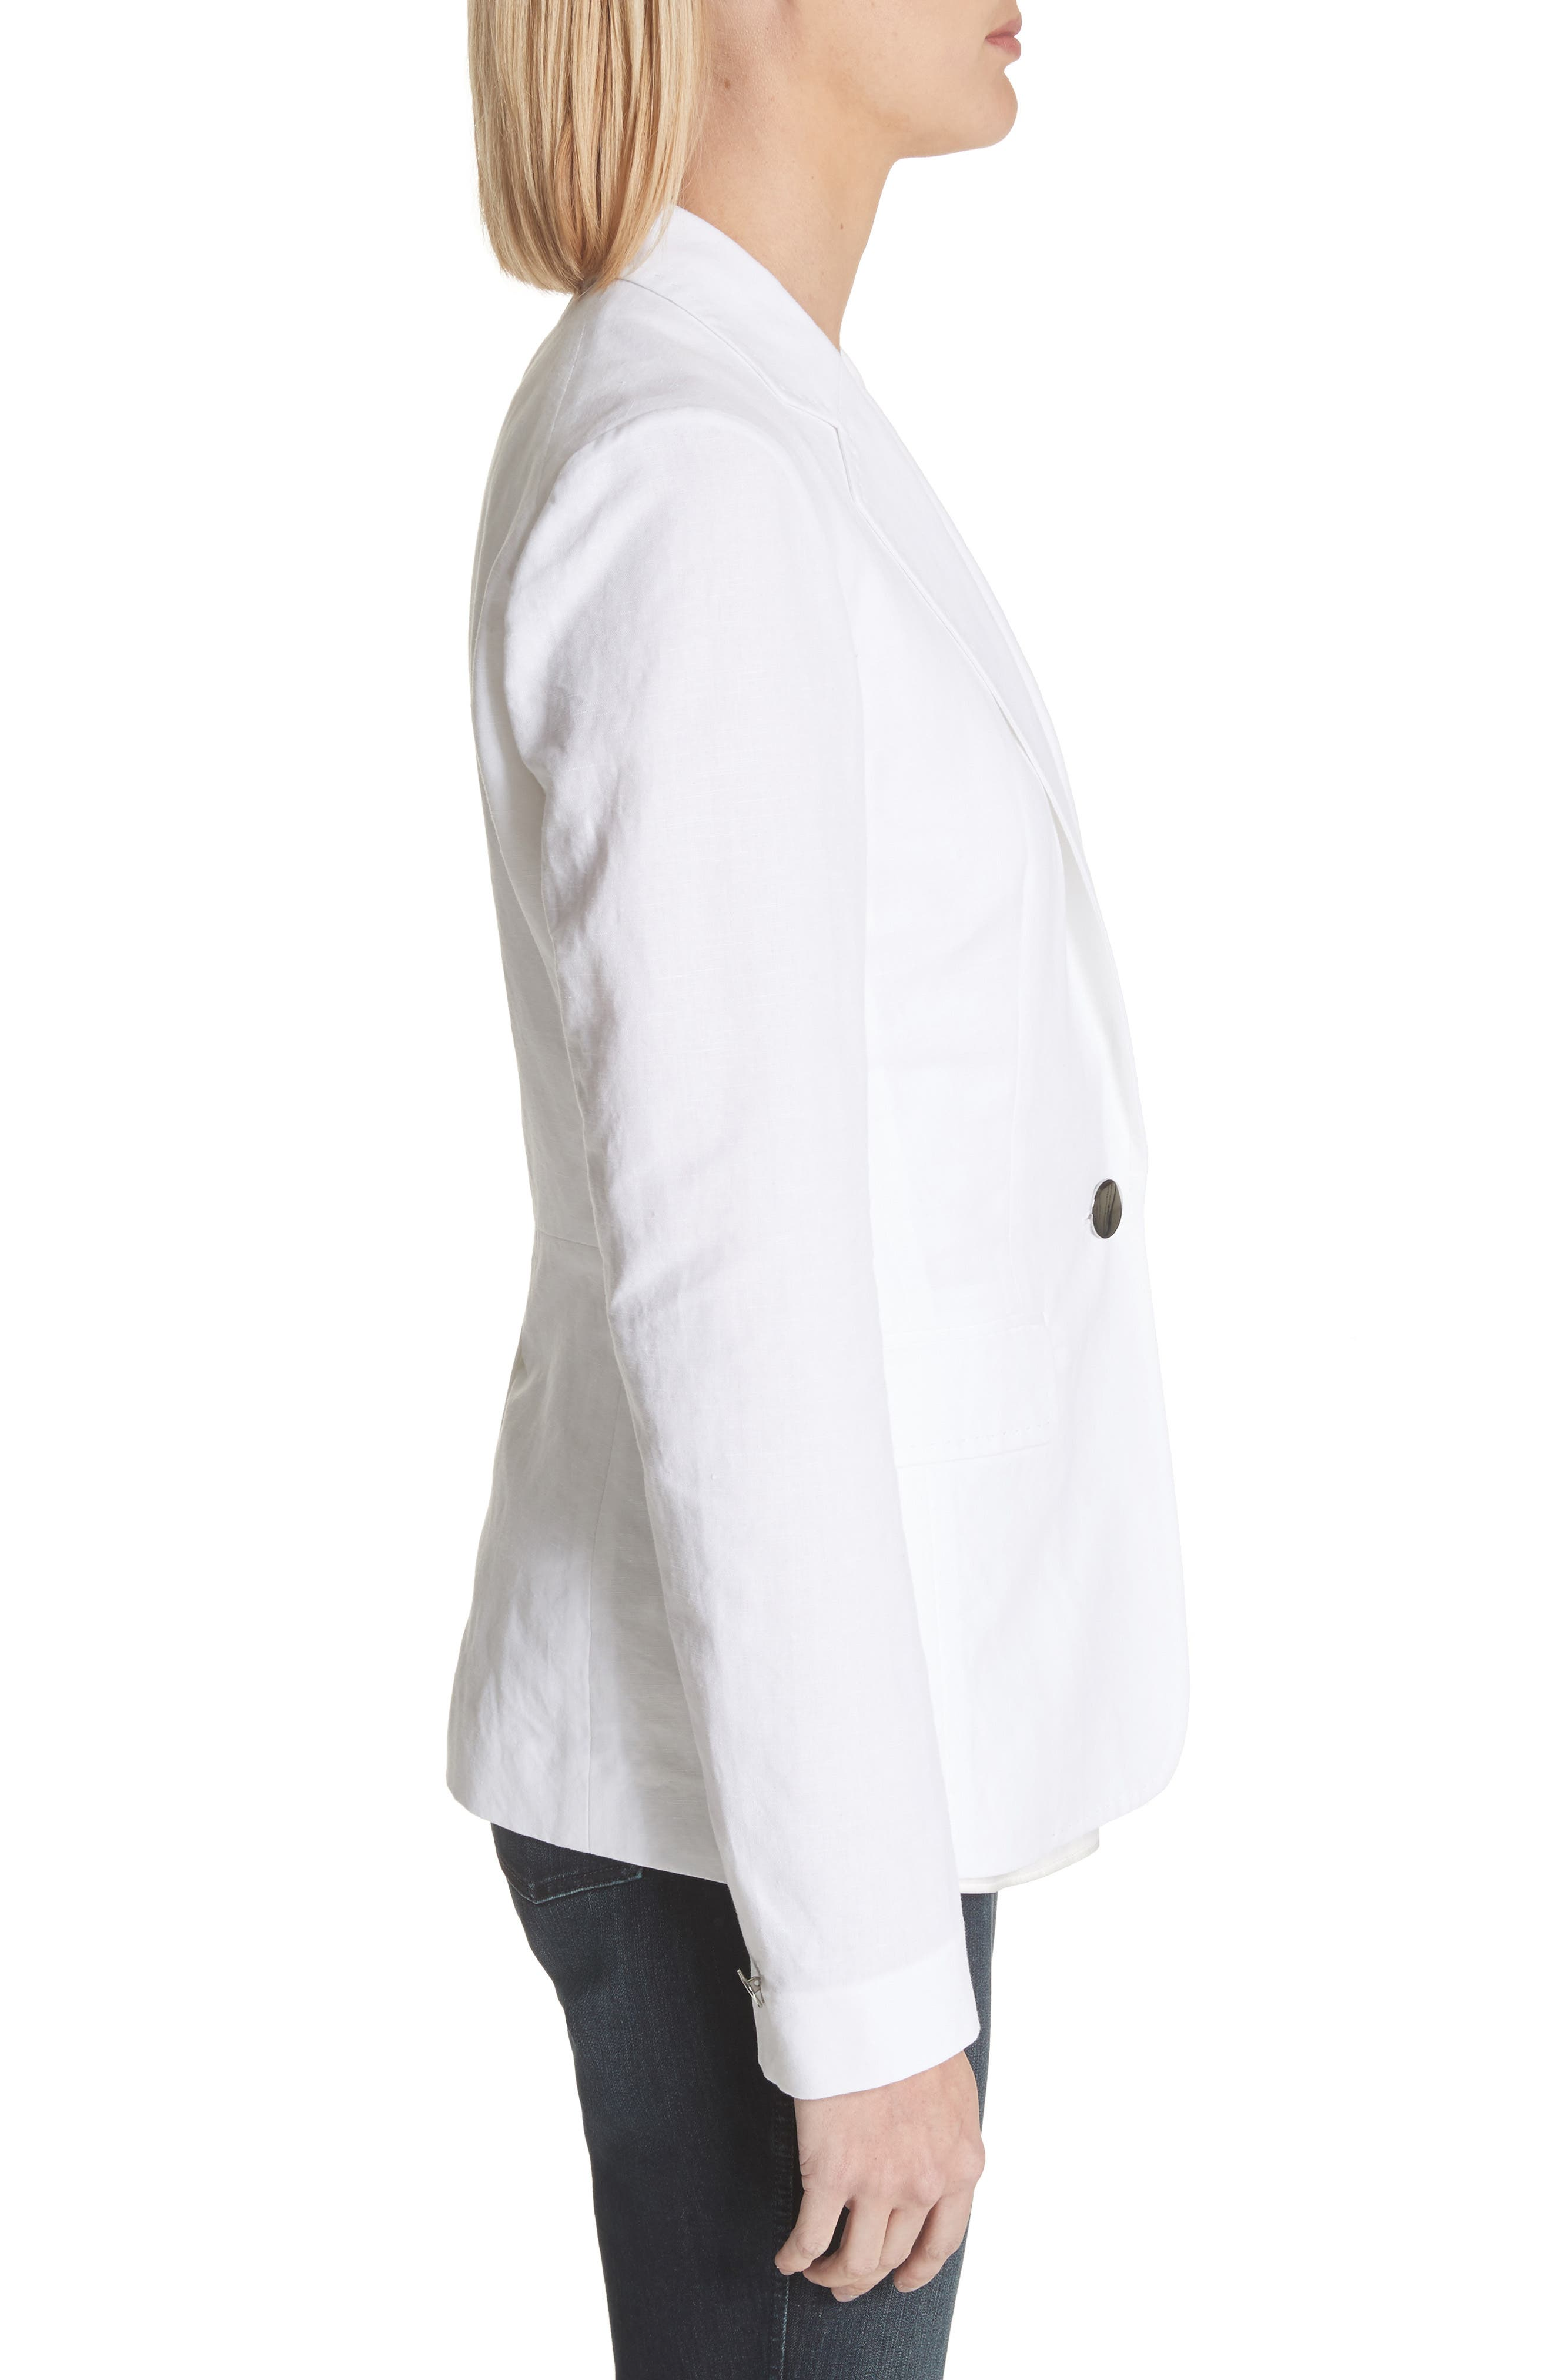 Lyndon Courtly Cotton & Linen Jacket,                             Alternate thumbnail 3, color,                             White